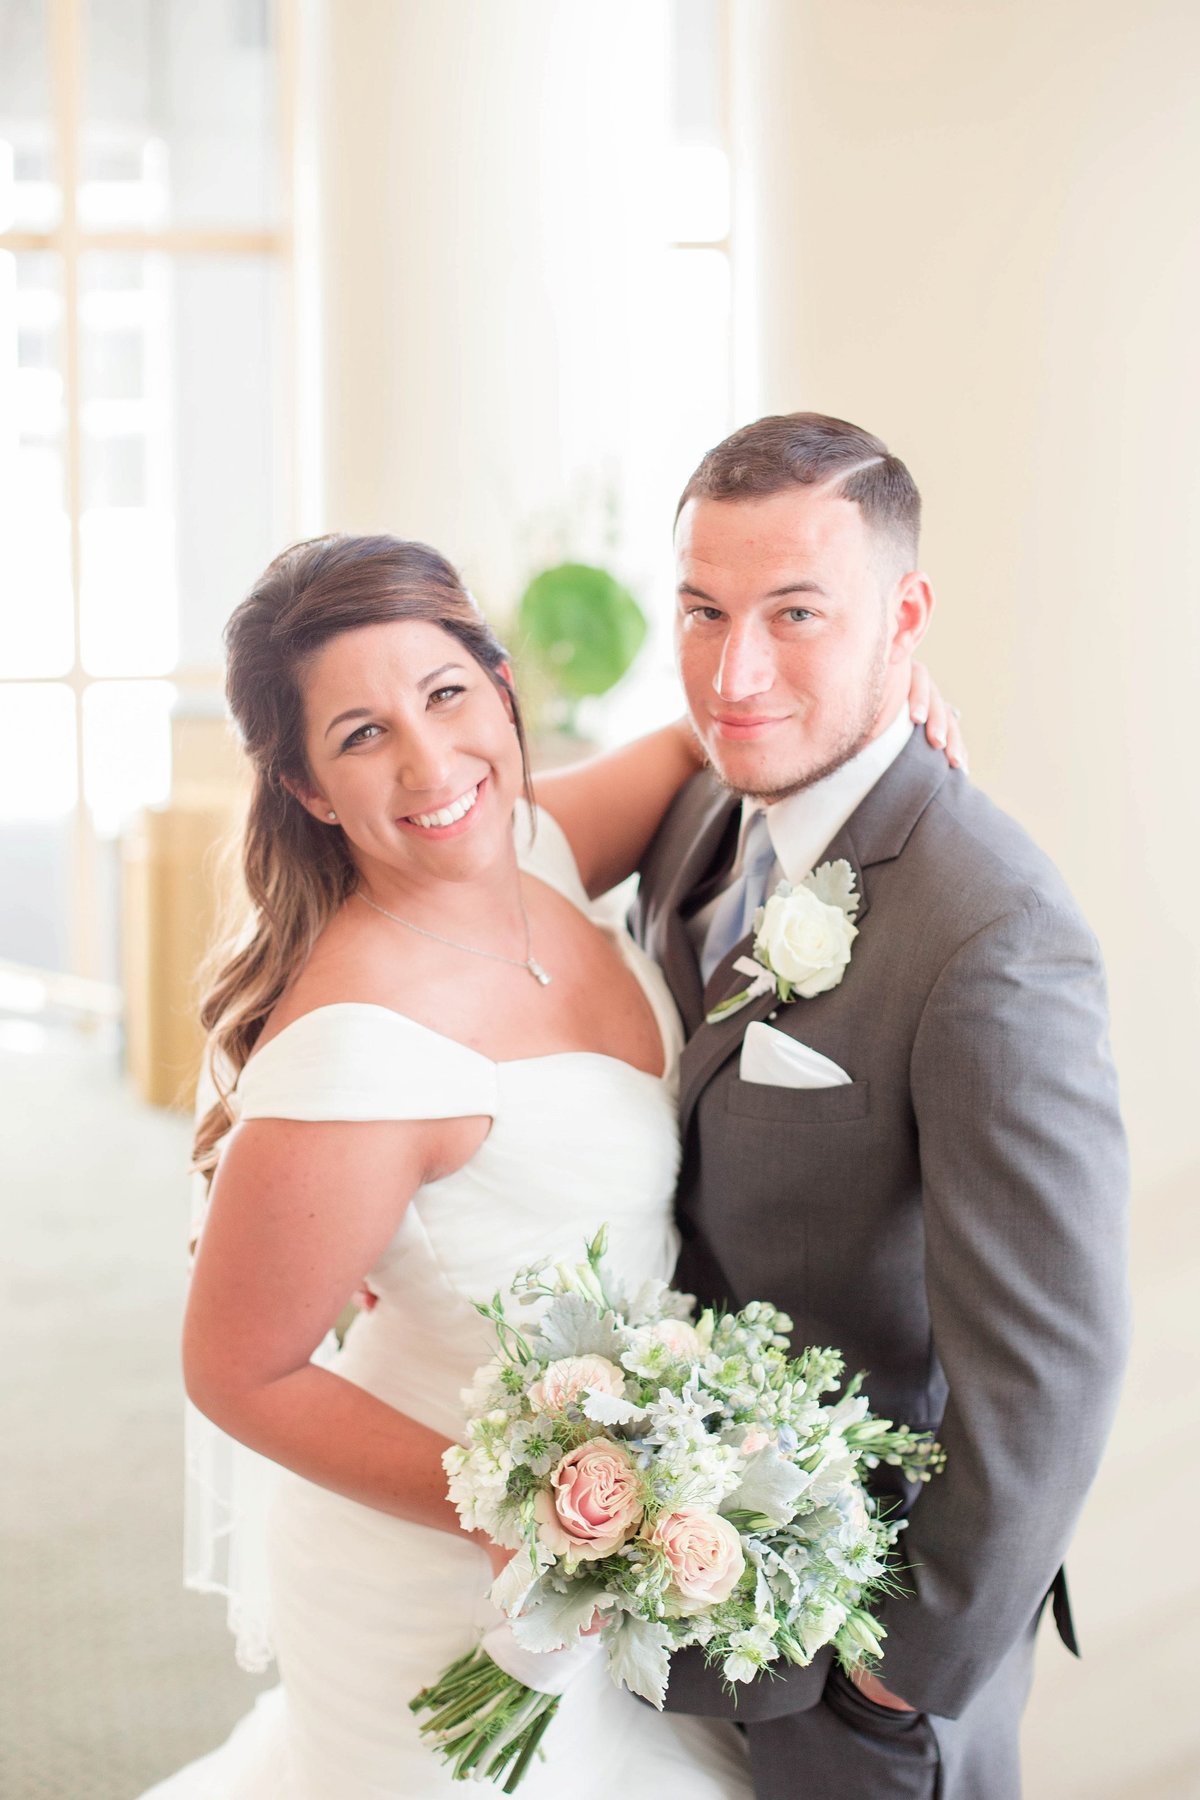 Baby Powder Blue and Blush Summer Park Inn Wedding with First Look by Toledo and Detroit Based Wedding Photographers Kent & Stephanie Photography_0984